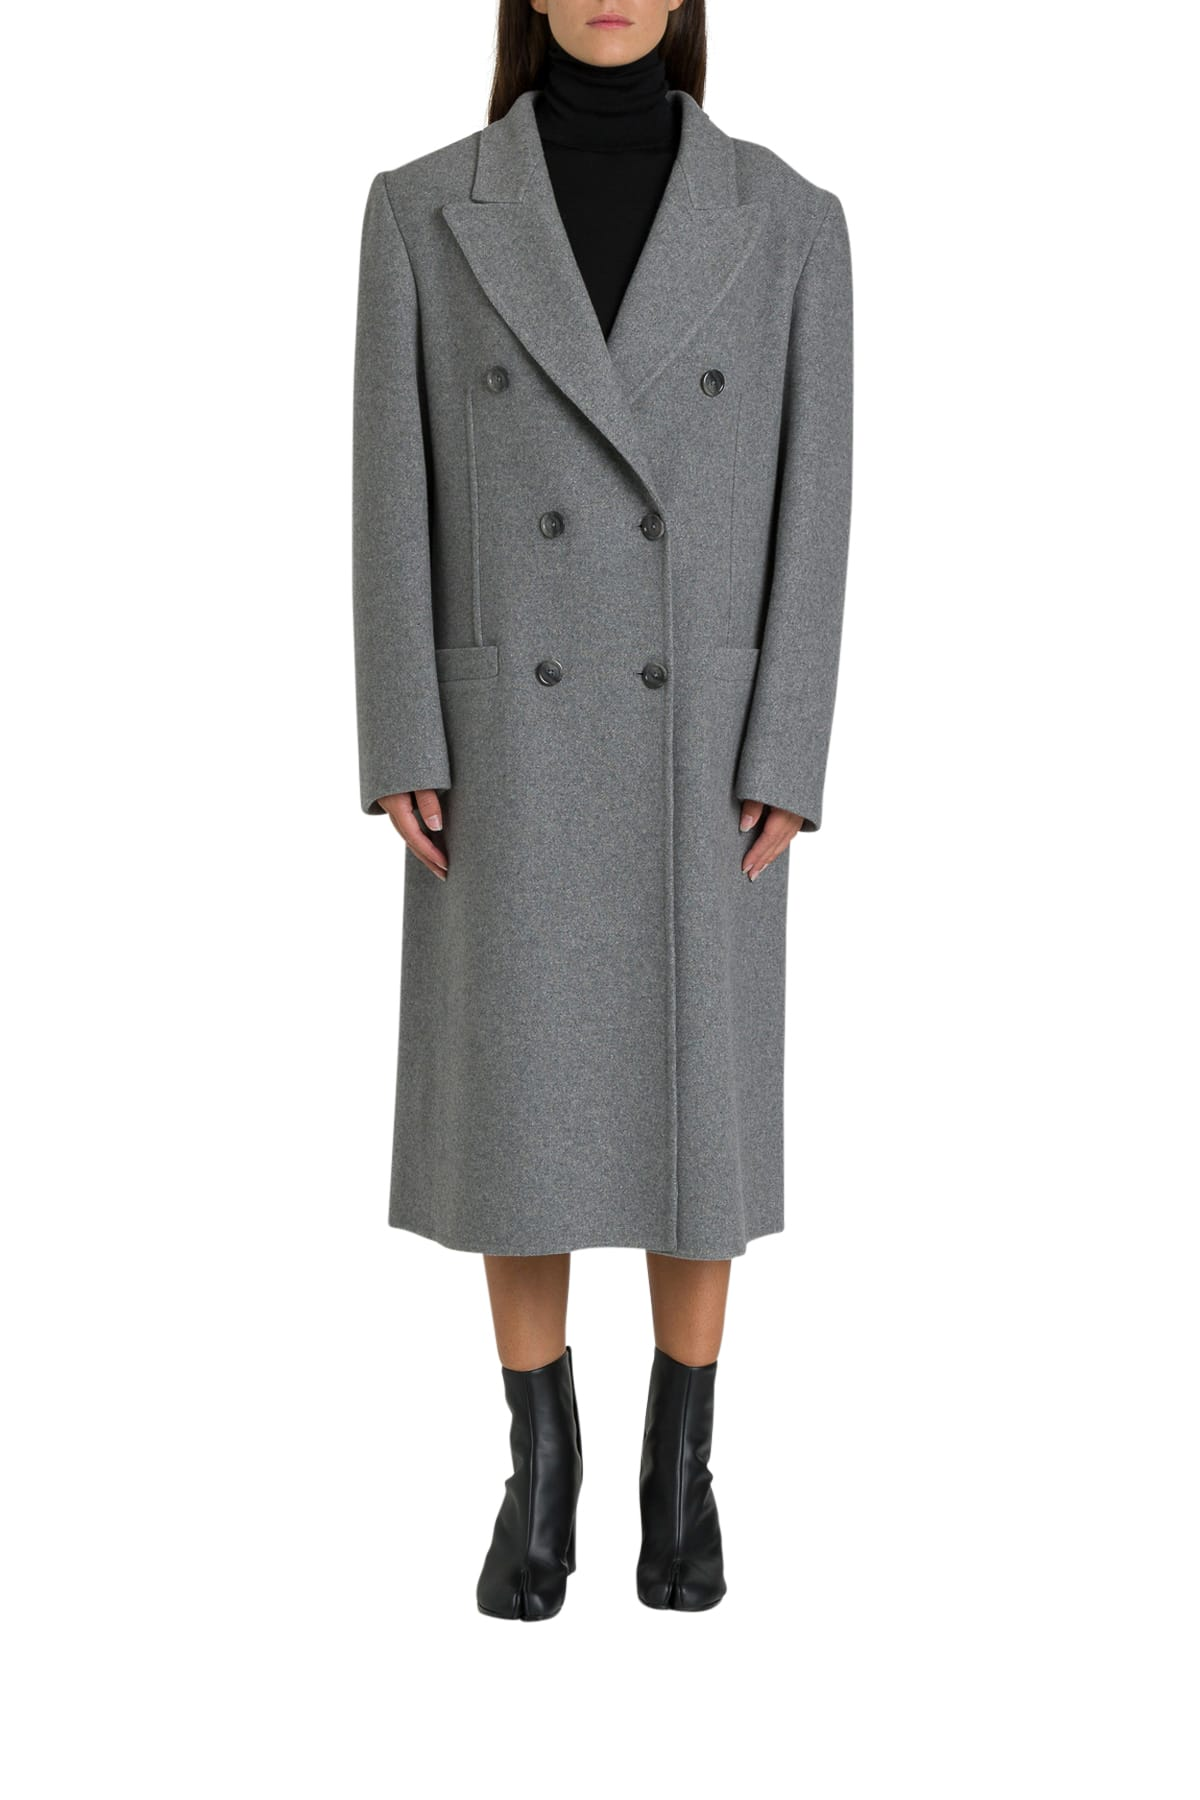 Maison Margiela Cashemre Double-breasted Coat